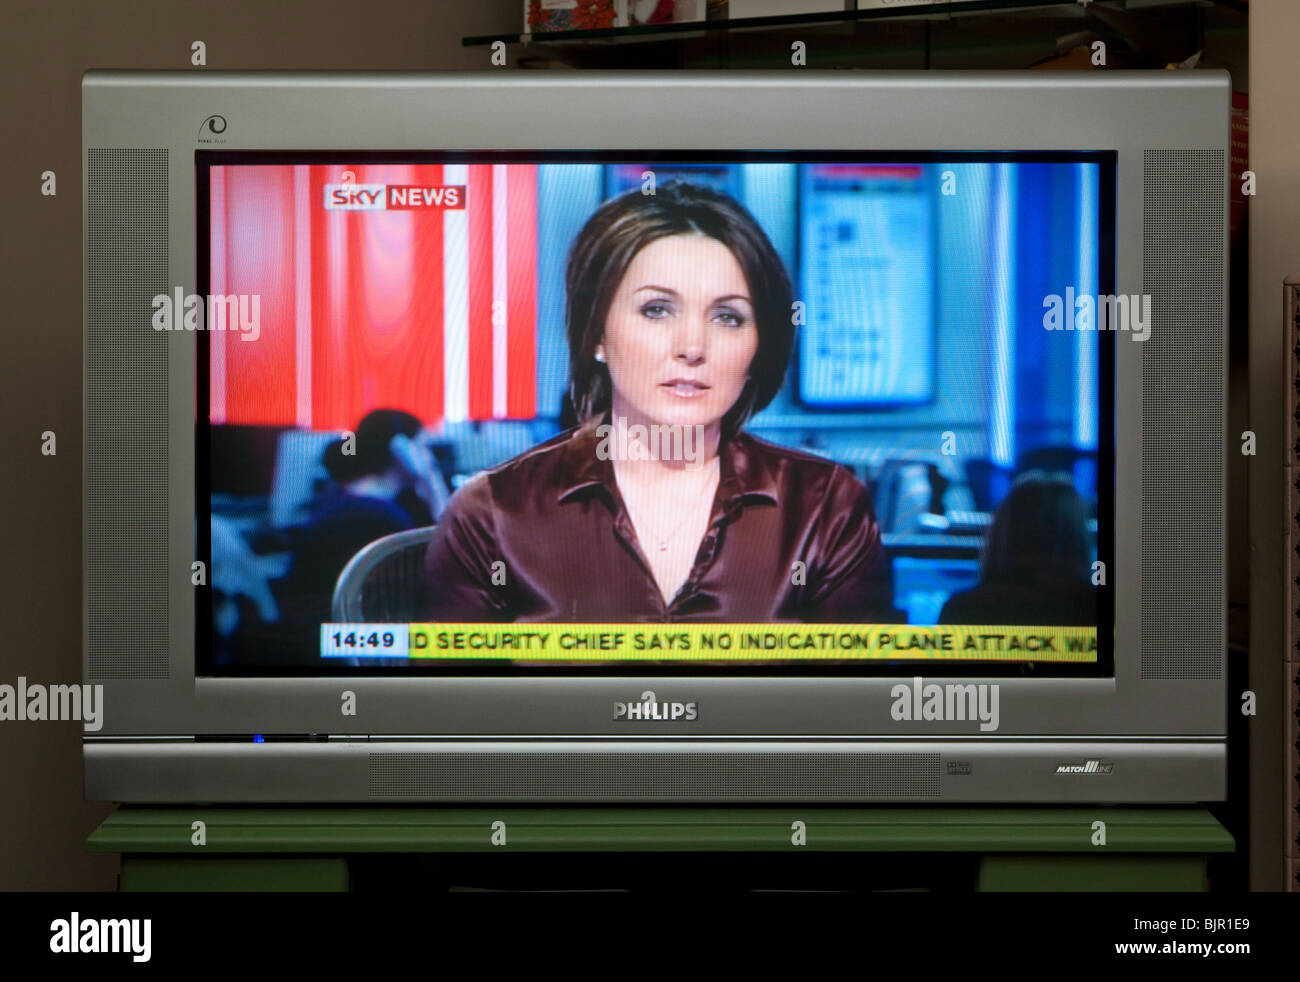 tv screen showing sky news channel stock photo 28780257 alamy